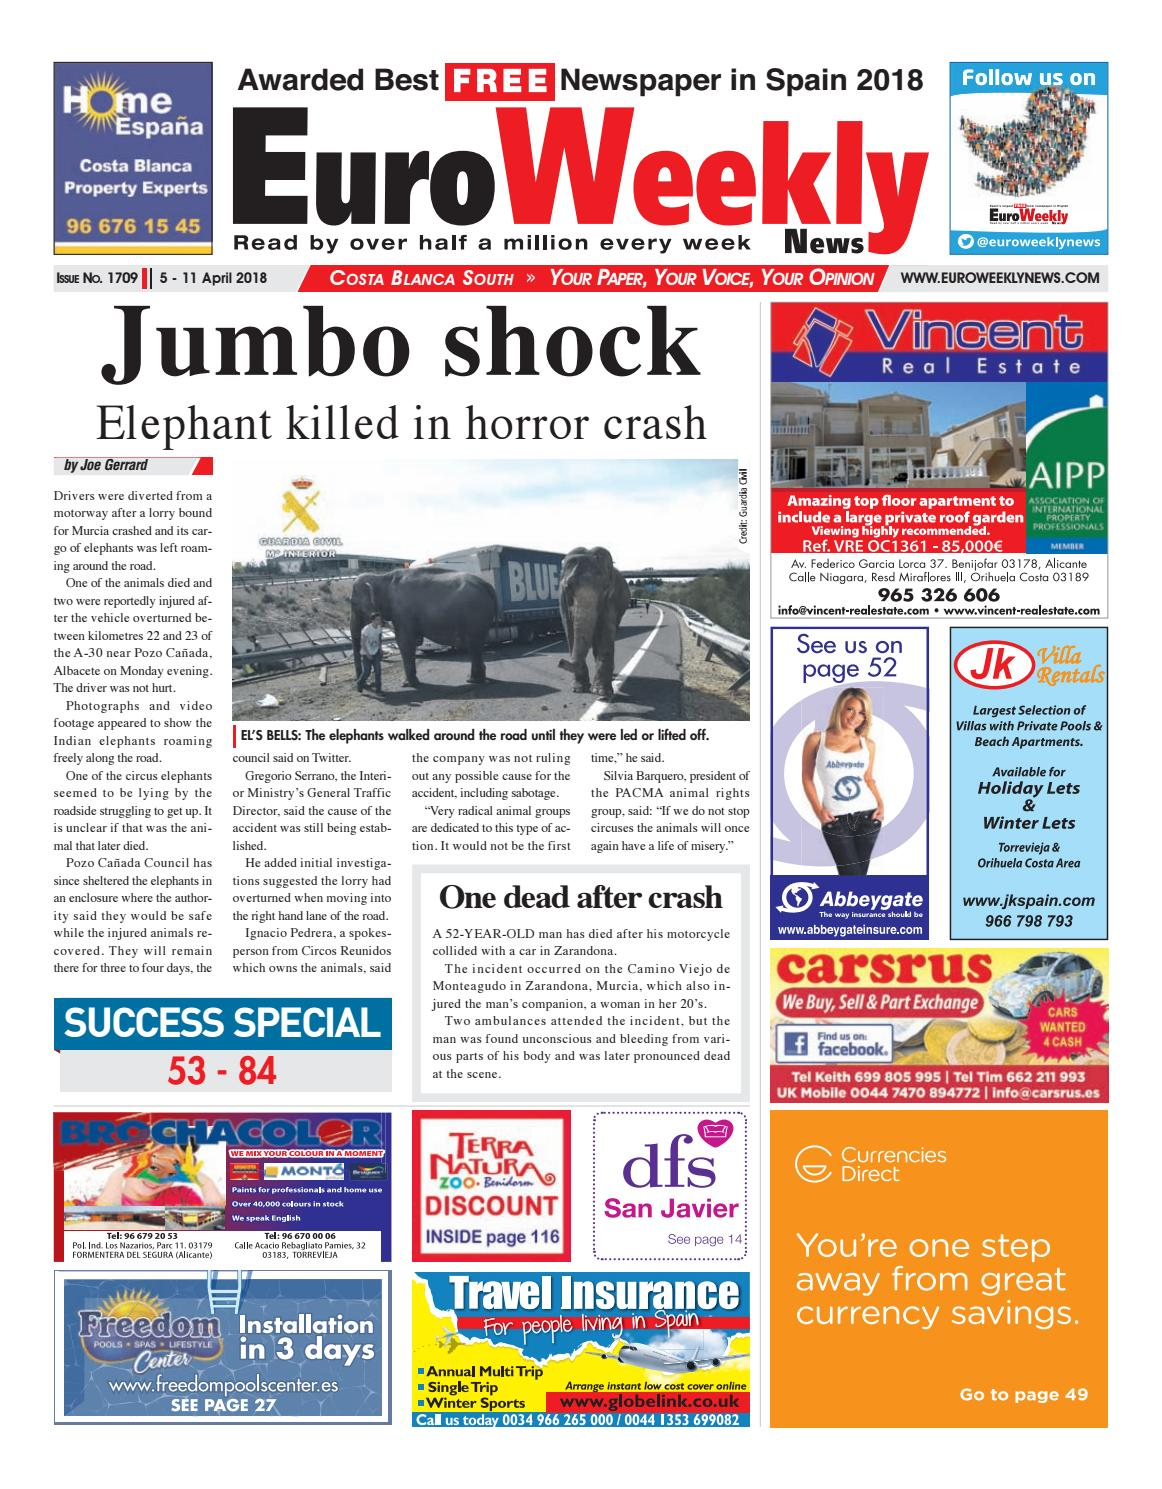 Sofaland Spain Euro Weekly News Costa Blanca South 5 March 11 April 2018 Issue 1709